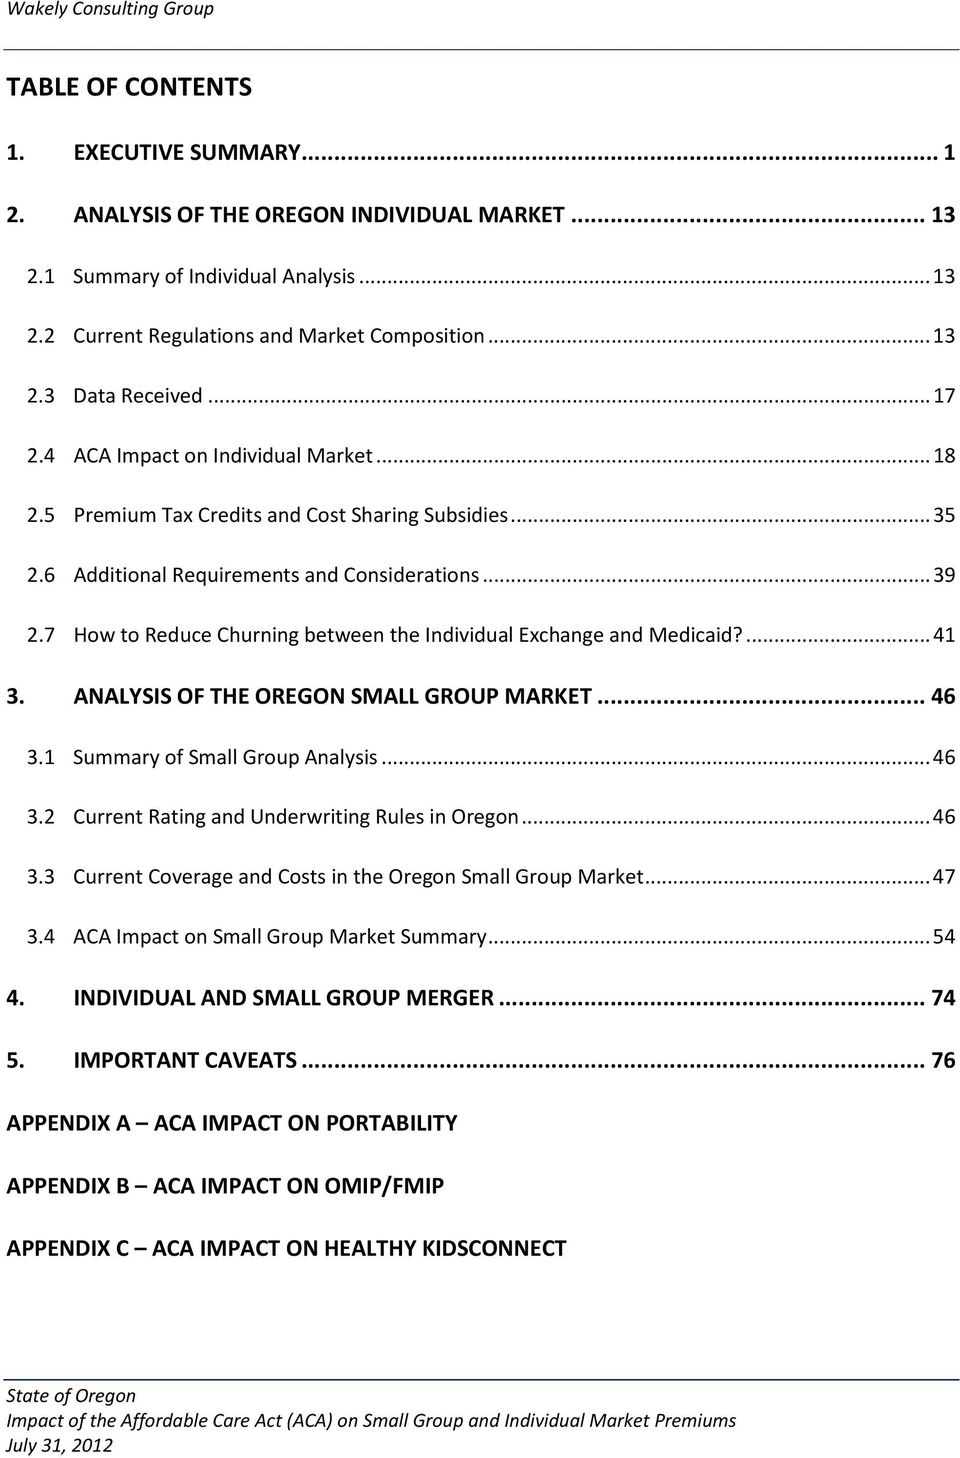 7 How to Reduce Churning between the Individual Exchange and Medicaid?... 41 3. ANALYSIS OF THE OREGON SMALL GROUP MARKET... 46 3.1 Summary of Small Group Analysis... 46 3.2 Current Rating and Underwriting Rules in Oregon.